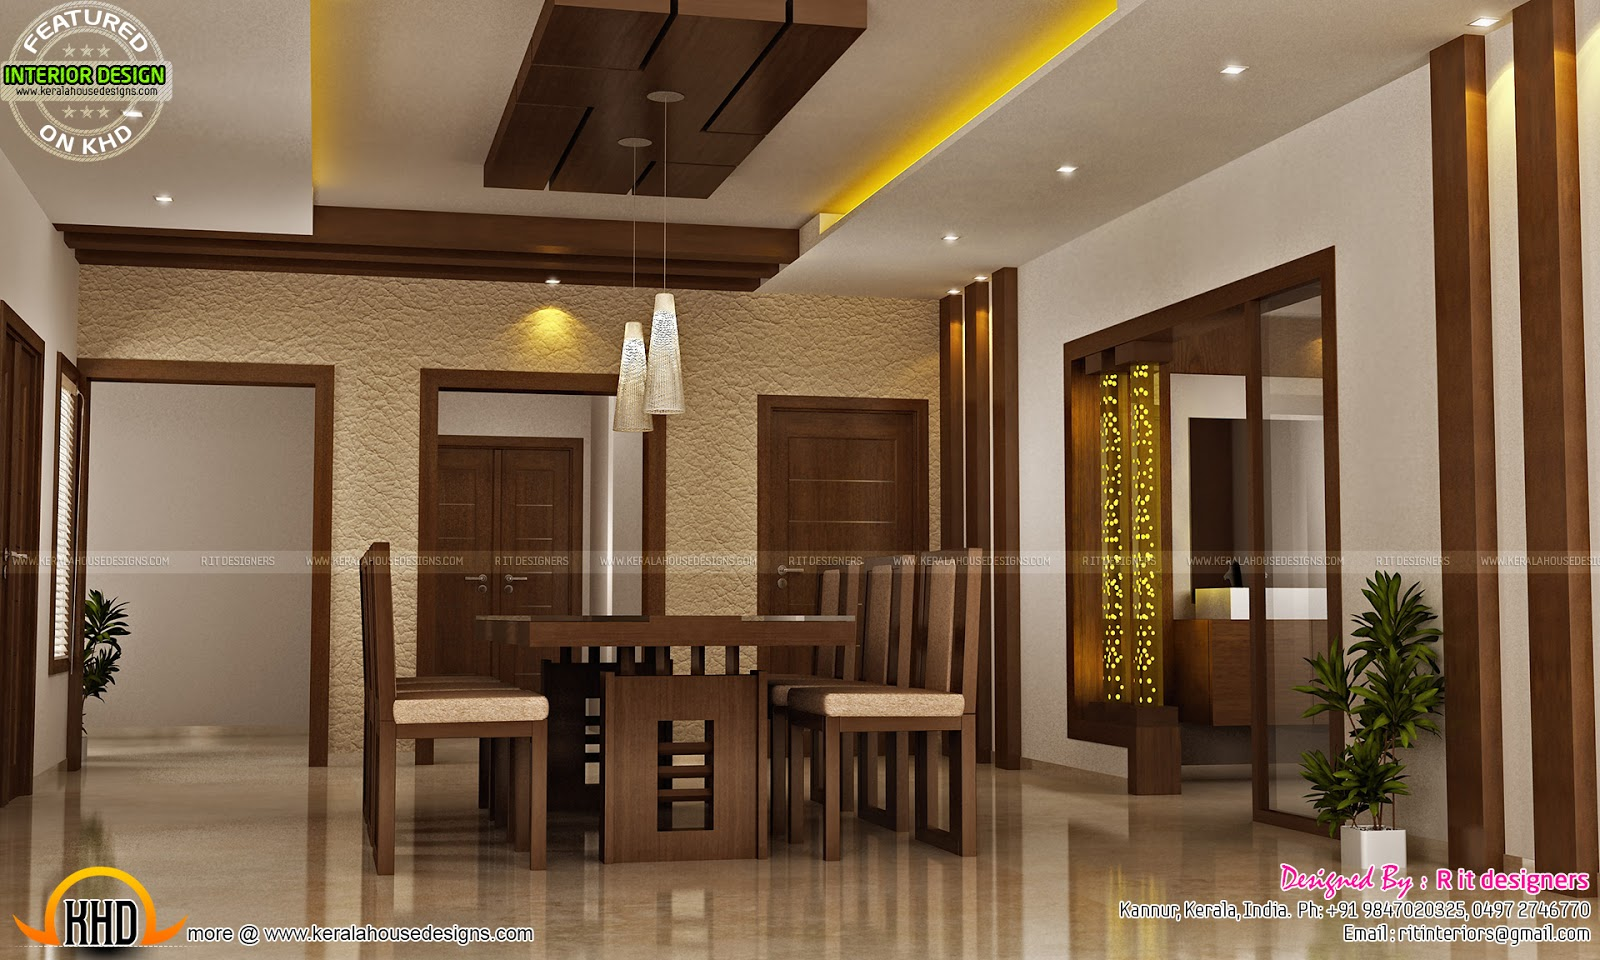 Home Interior Design Ideas Kerala: Modular Kitchen, Bedroom, Teen Bedroom And Dining Interior